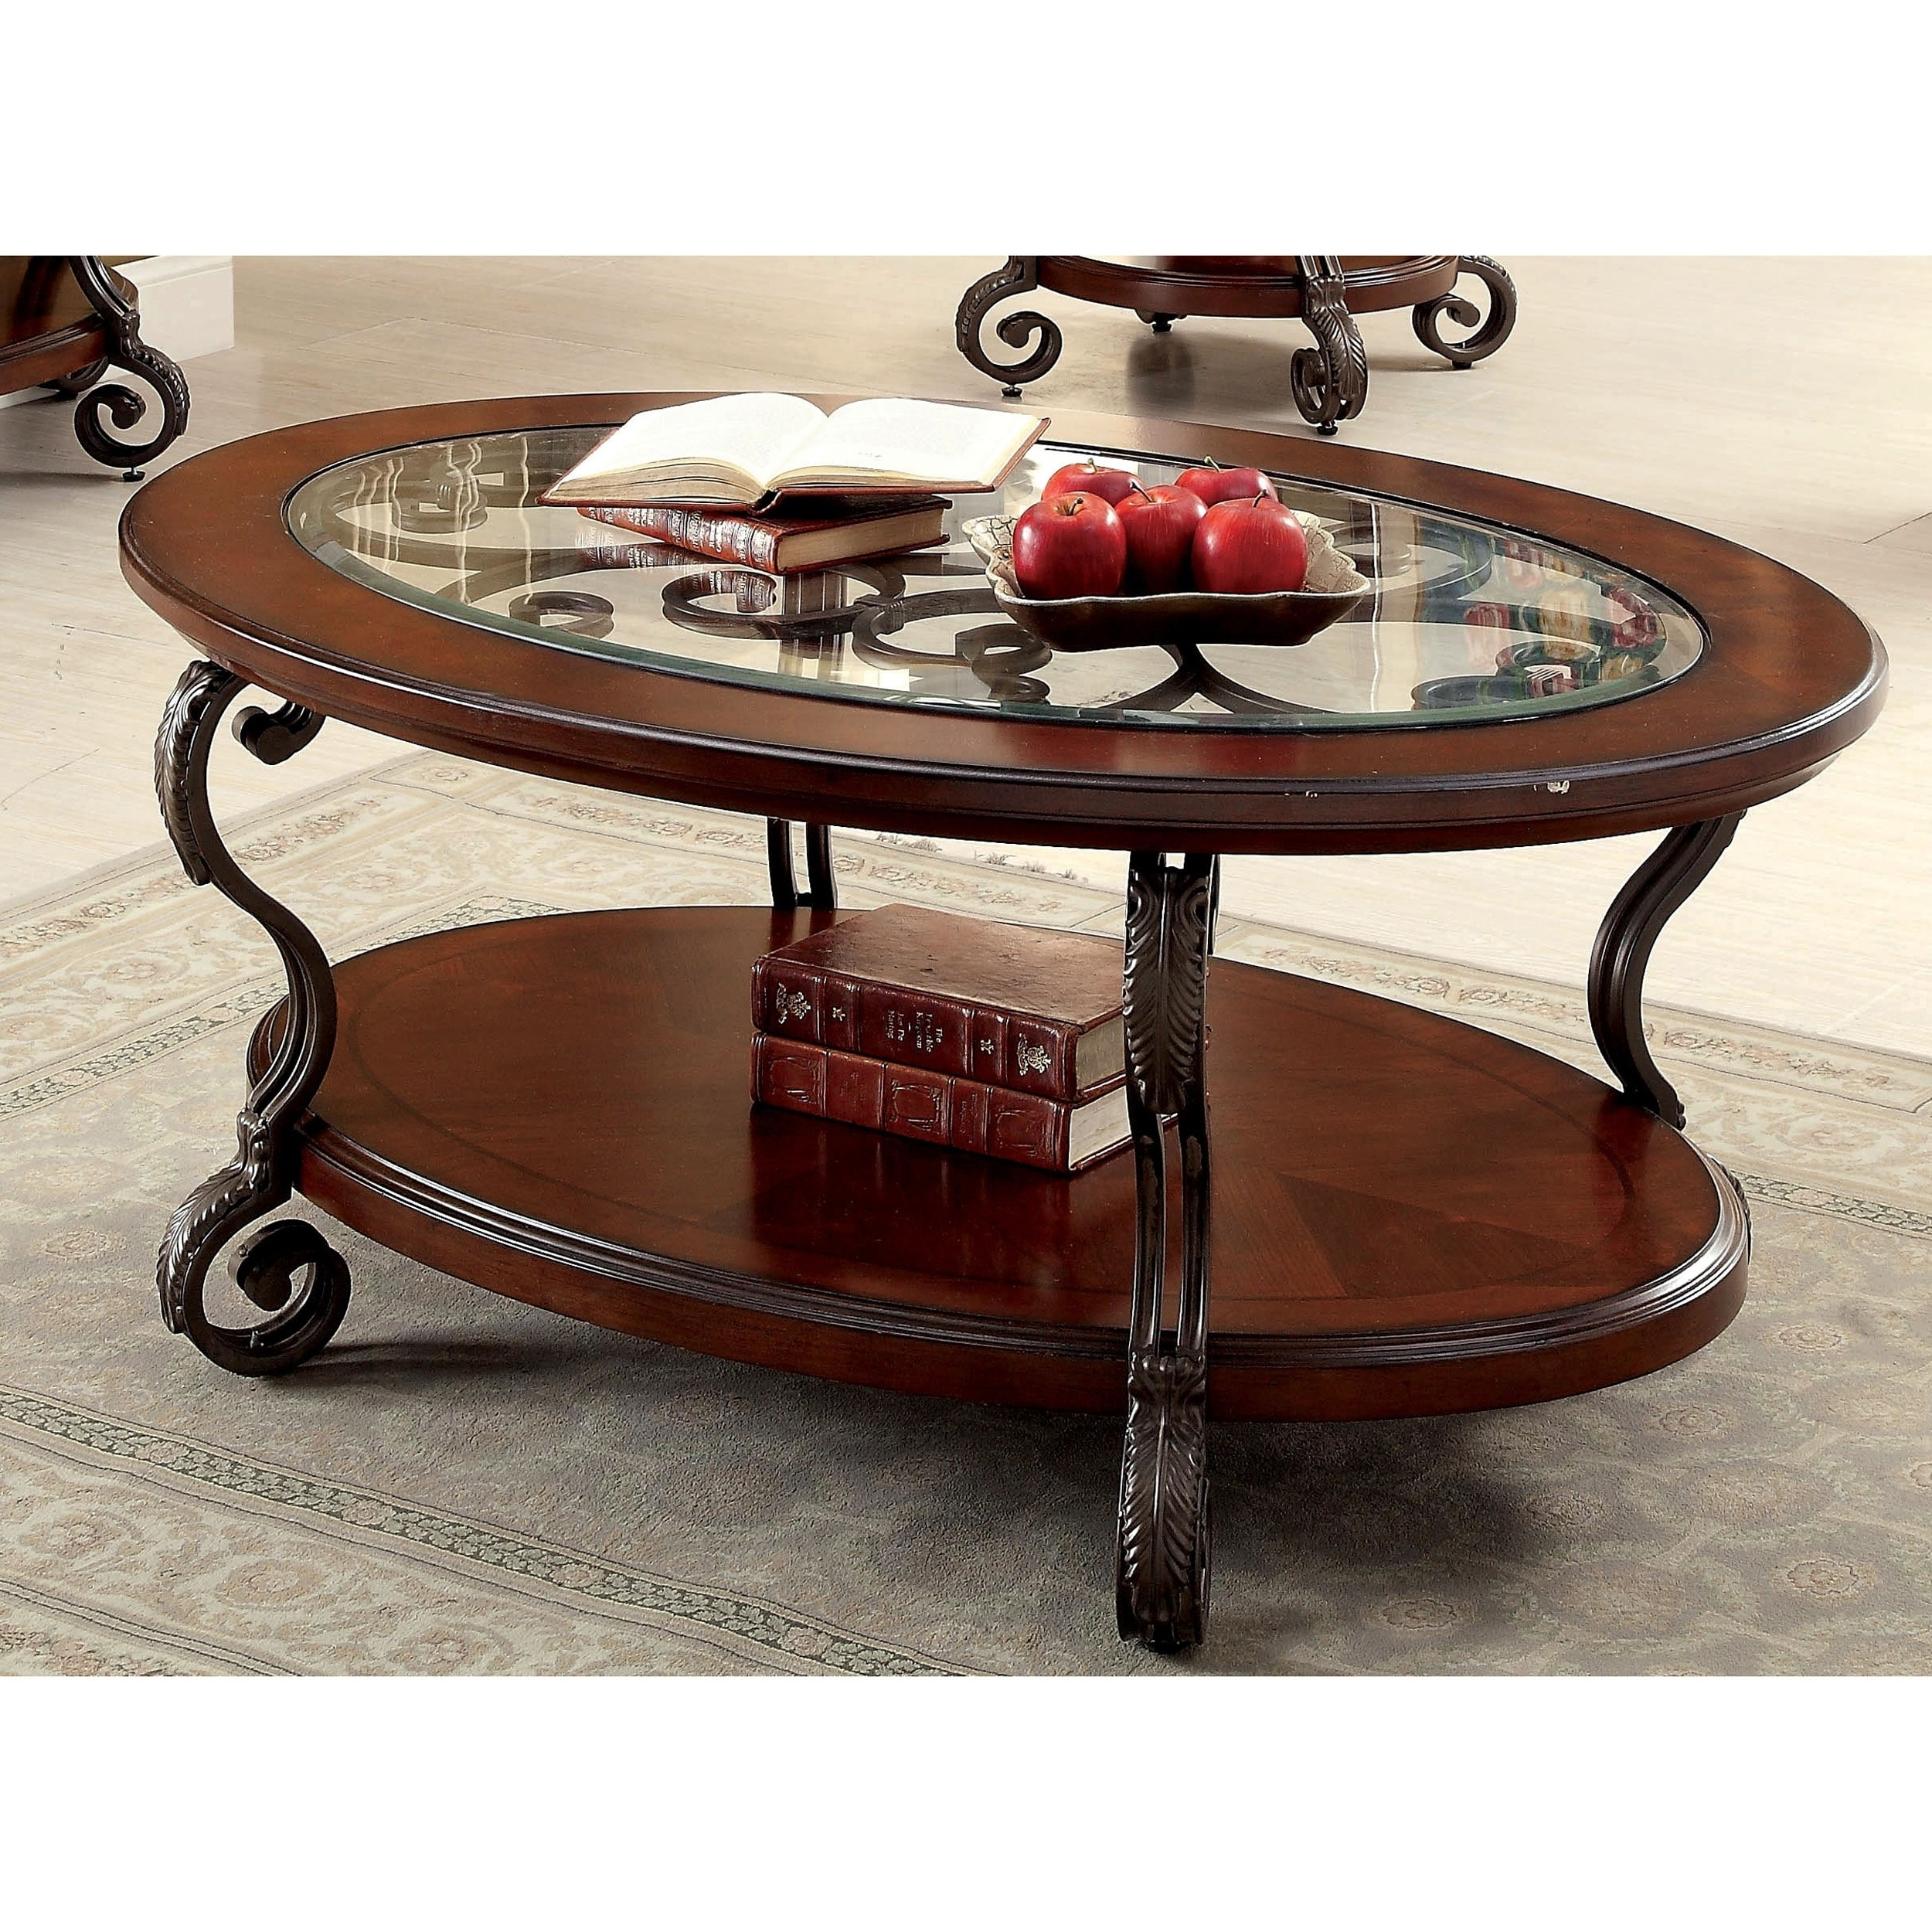 Shop furniture of america cohler elegant glass top cherry brown oval coffee table on sale free shipping today overstock com 11870761